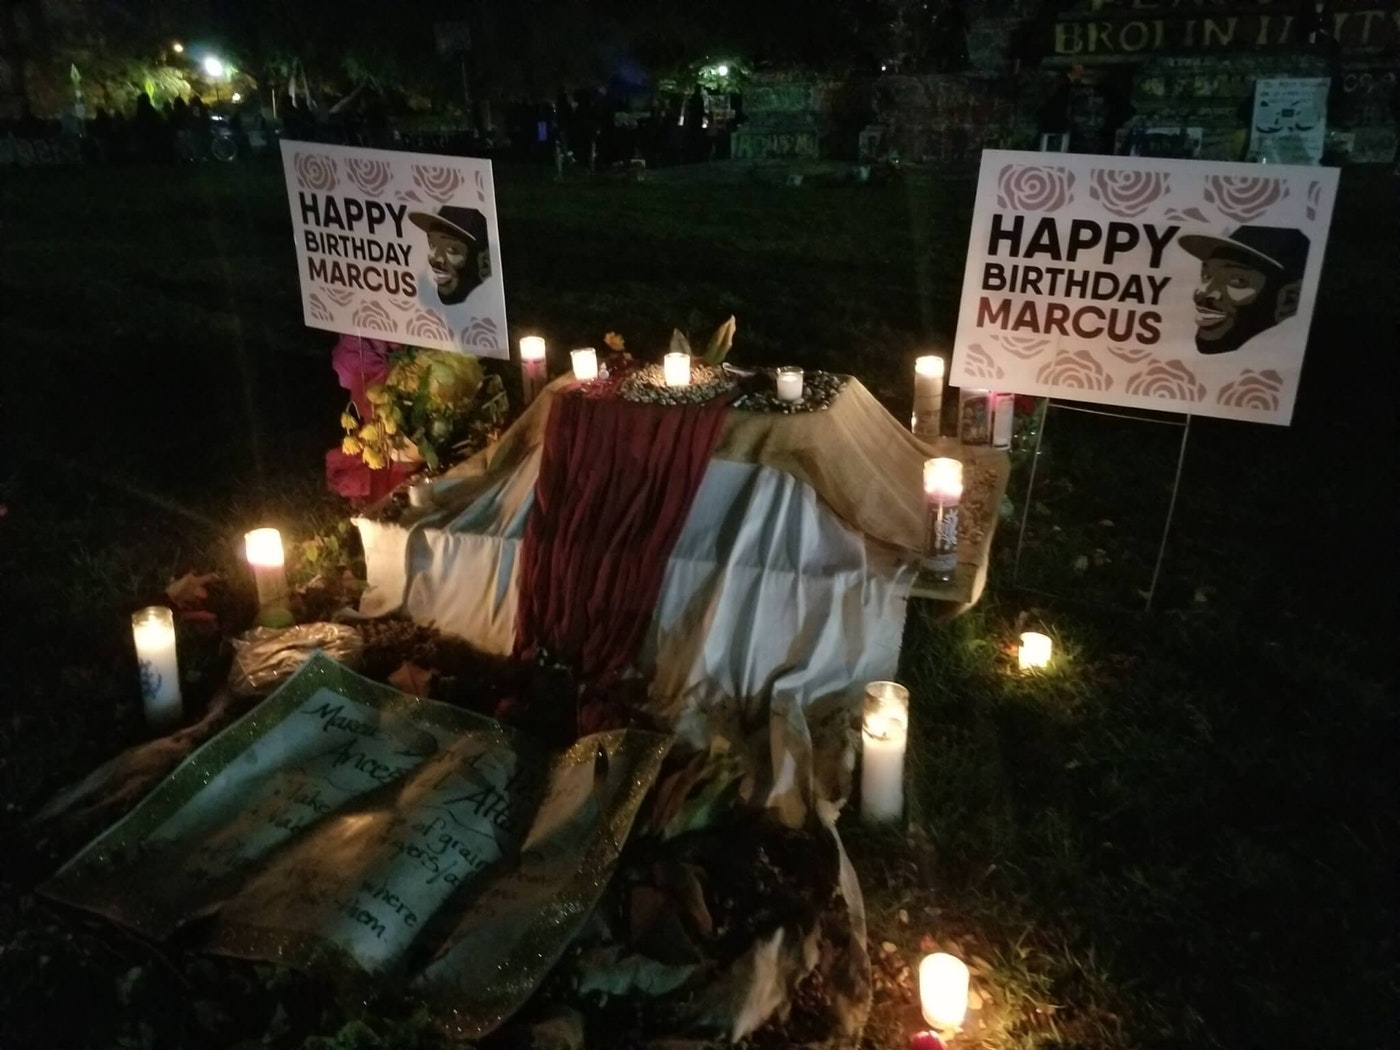 The memorial for Marcus David Peters stays up at the Circle that locals refer to by his name. Dogwood photo by Meg Schiffres.